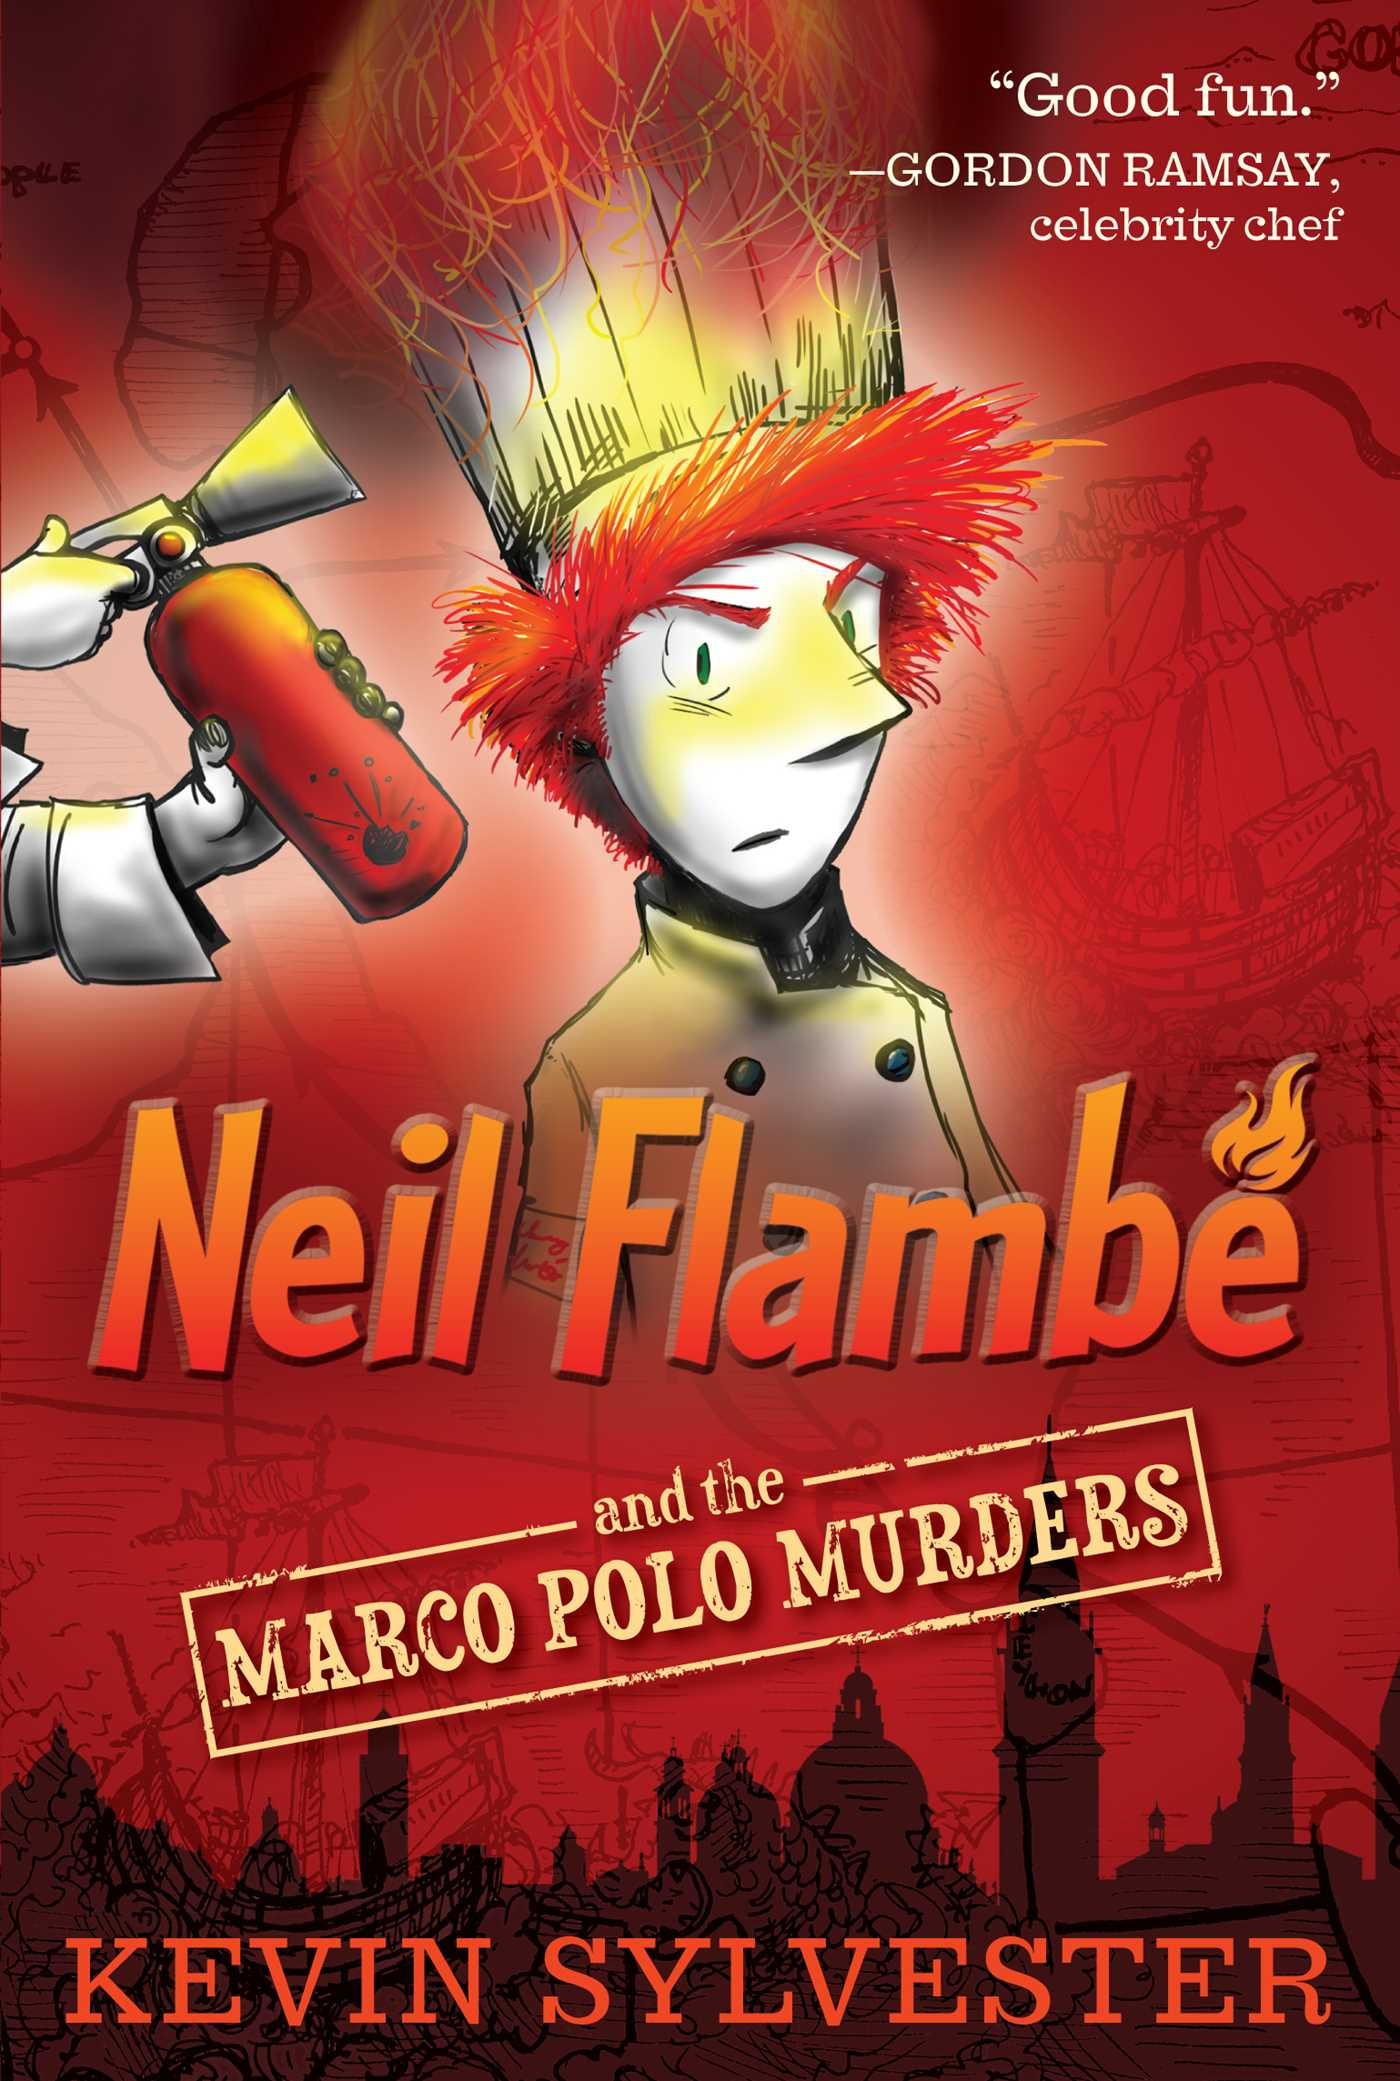 Neil flambe and the marco polo murders 9781442446052 hr